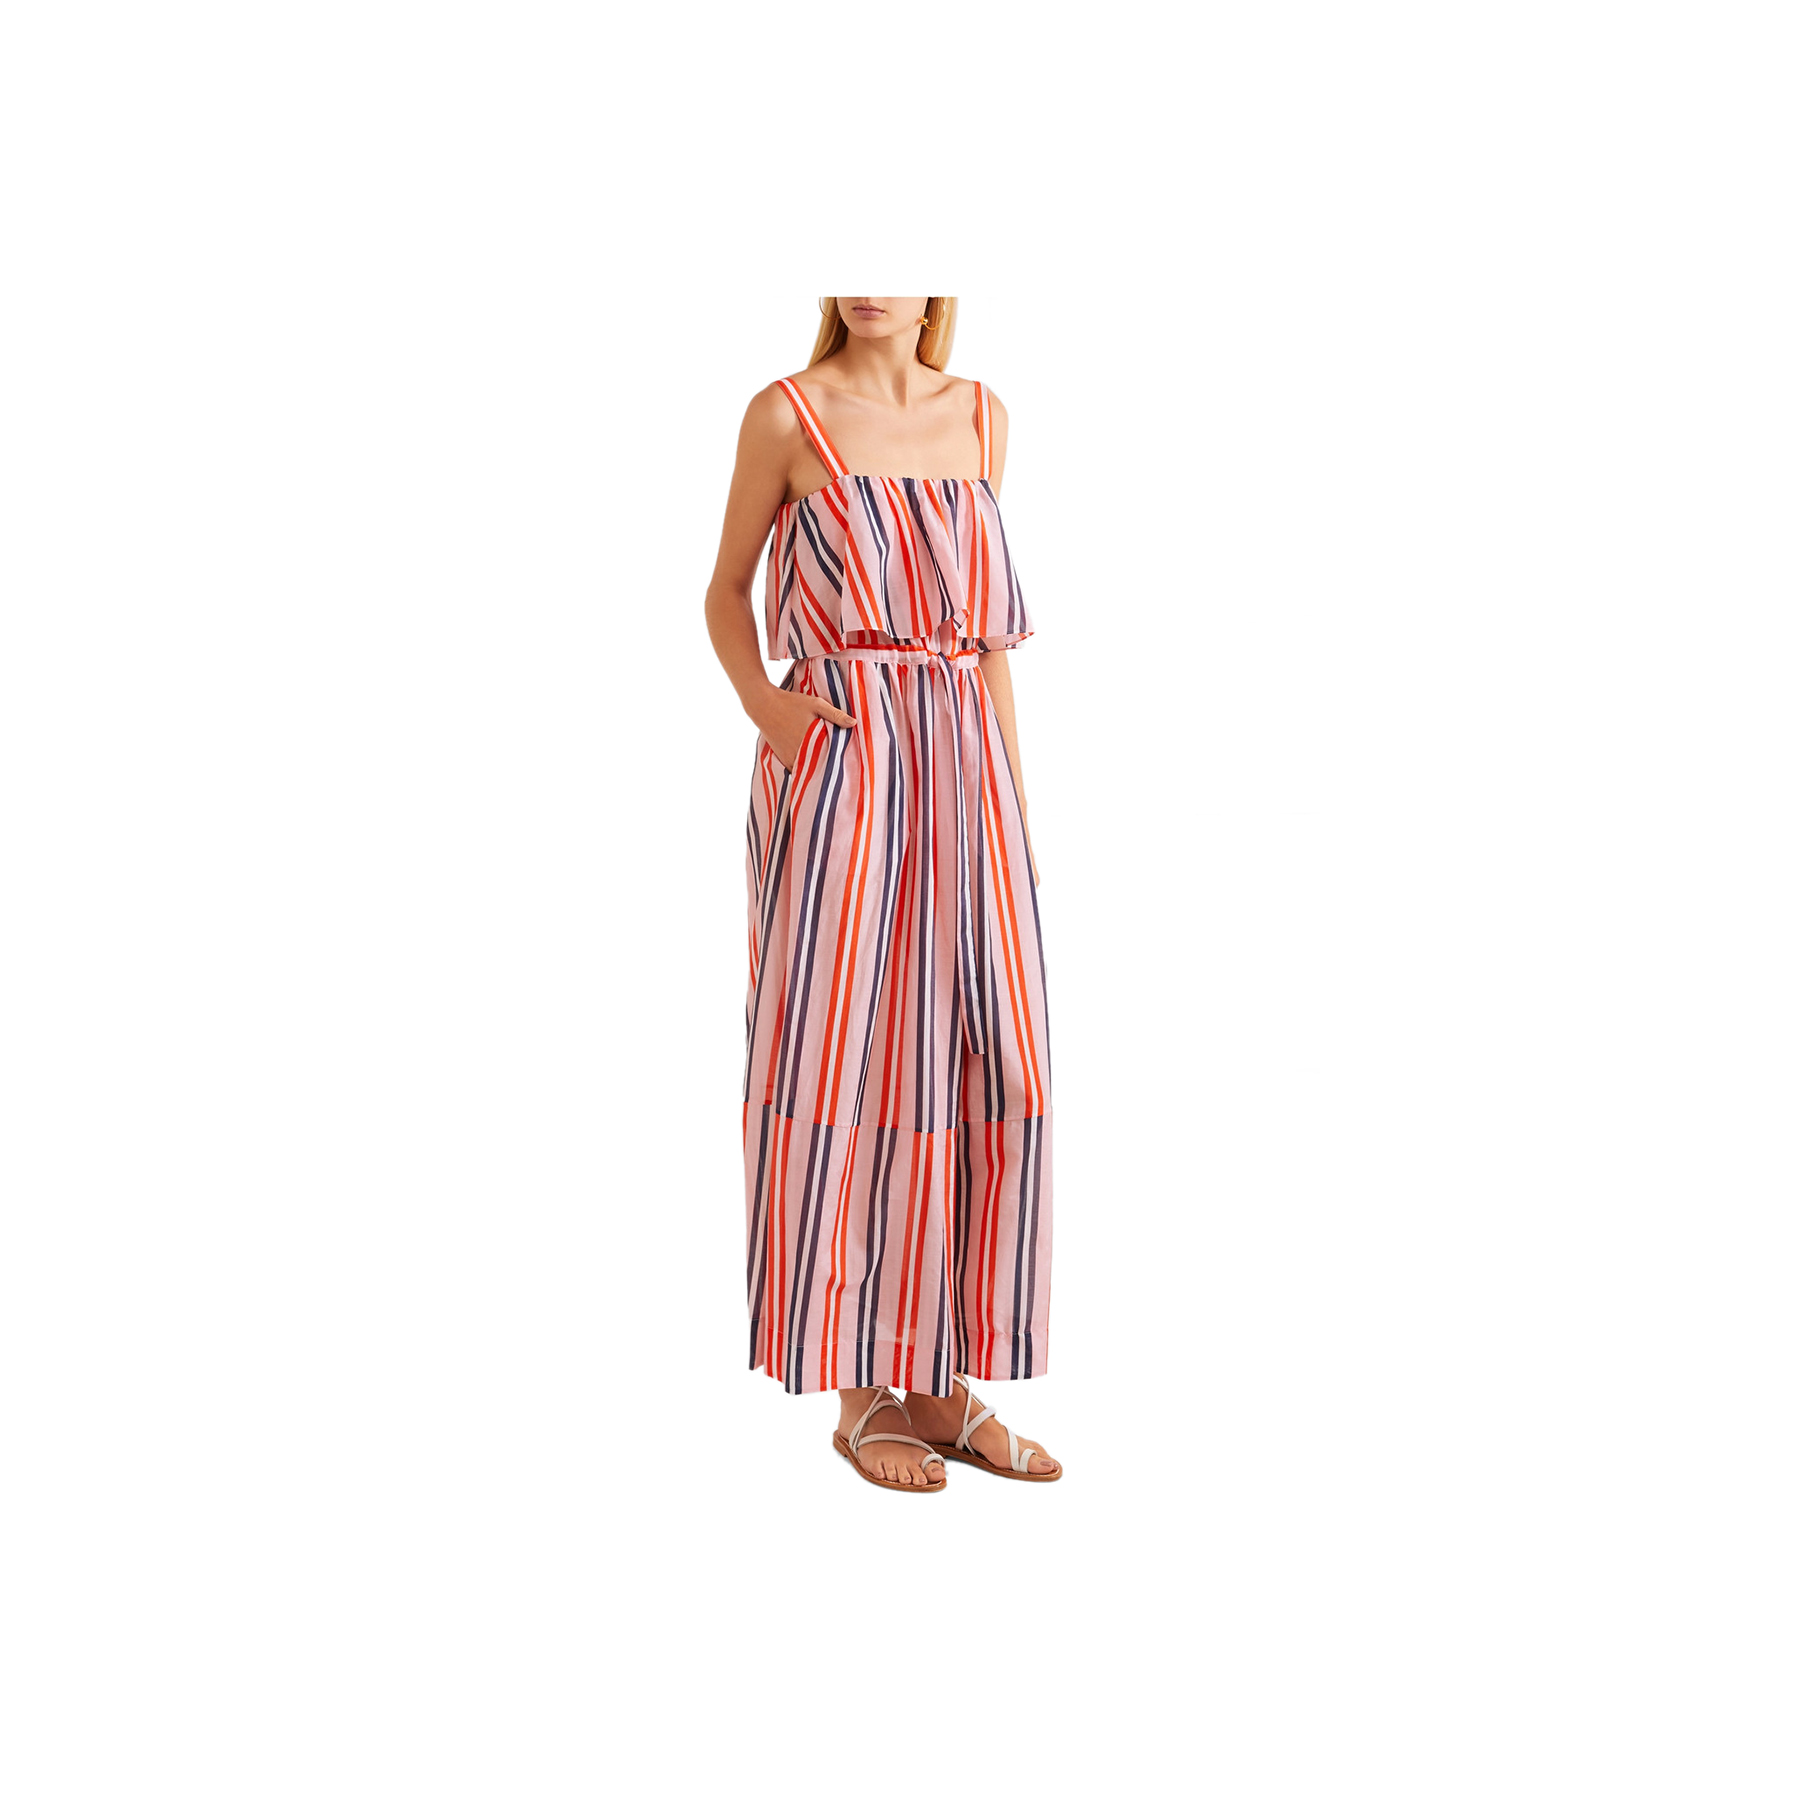 Maxi Dresses to Keep You Cool This Summer